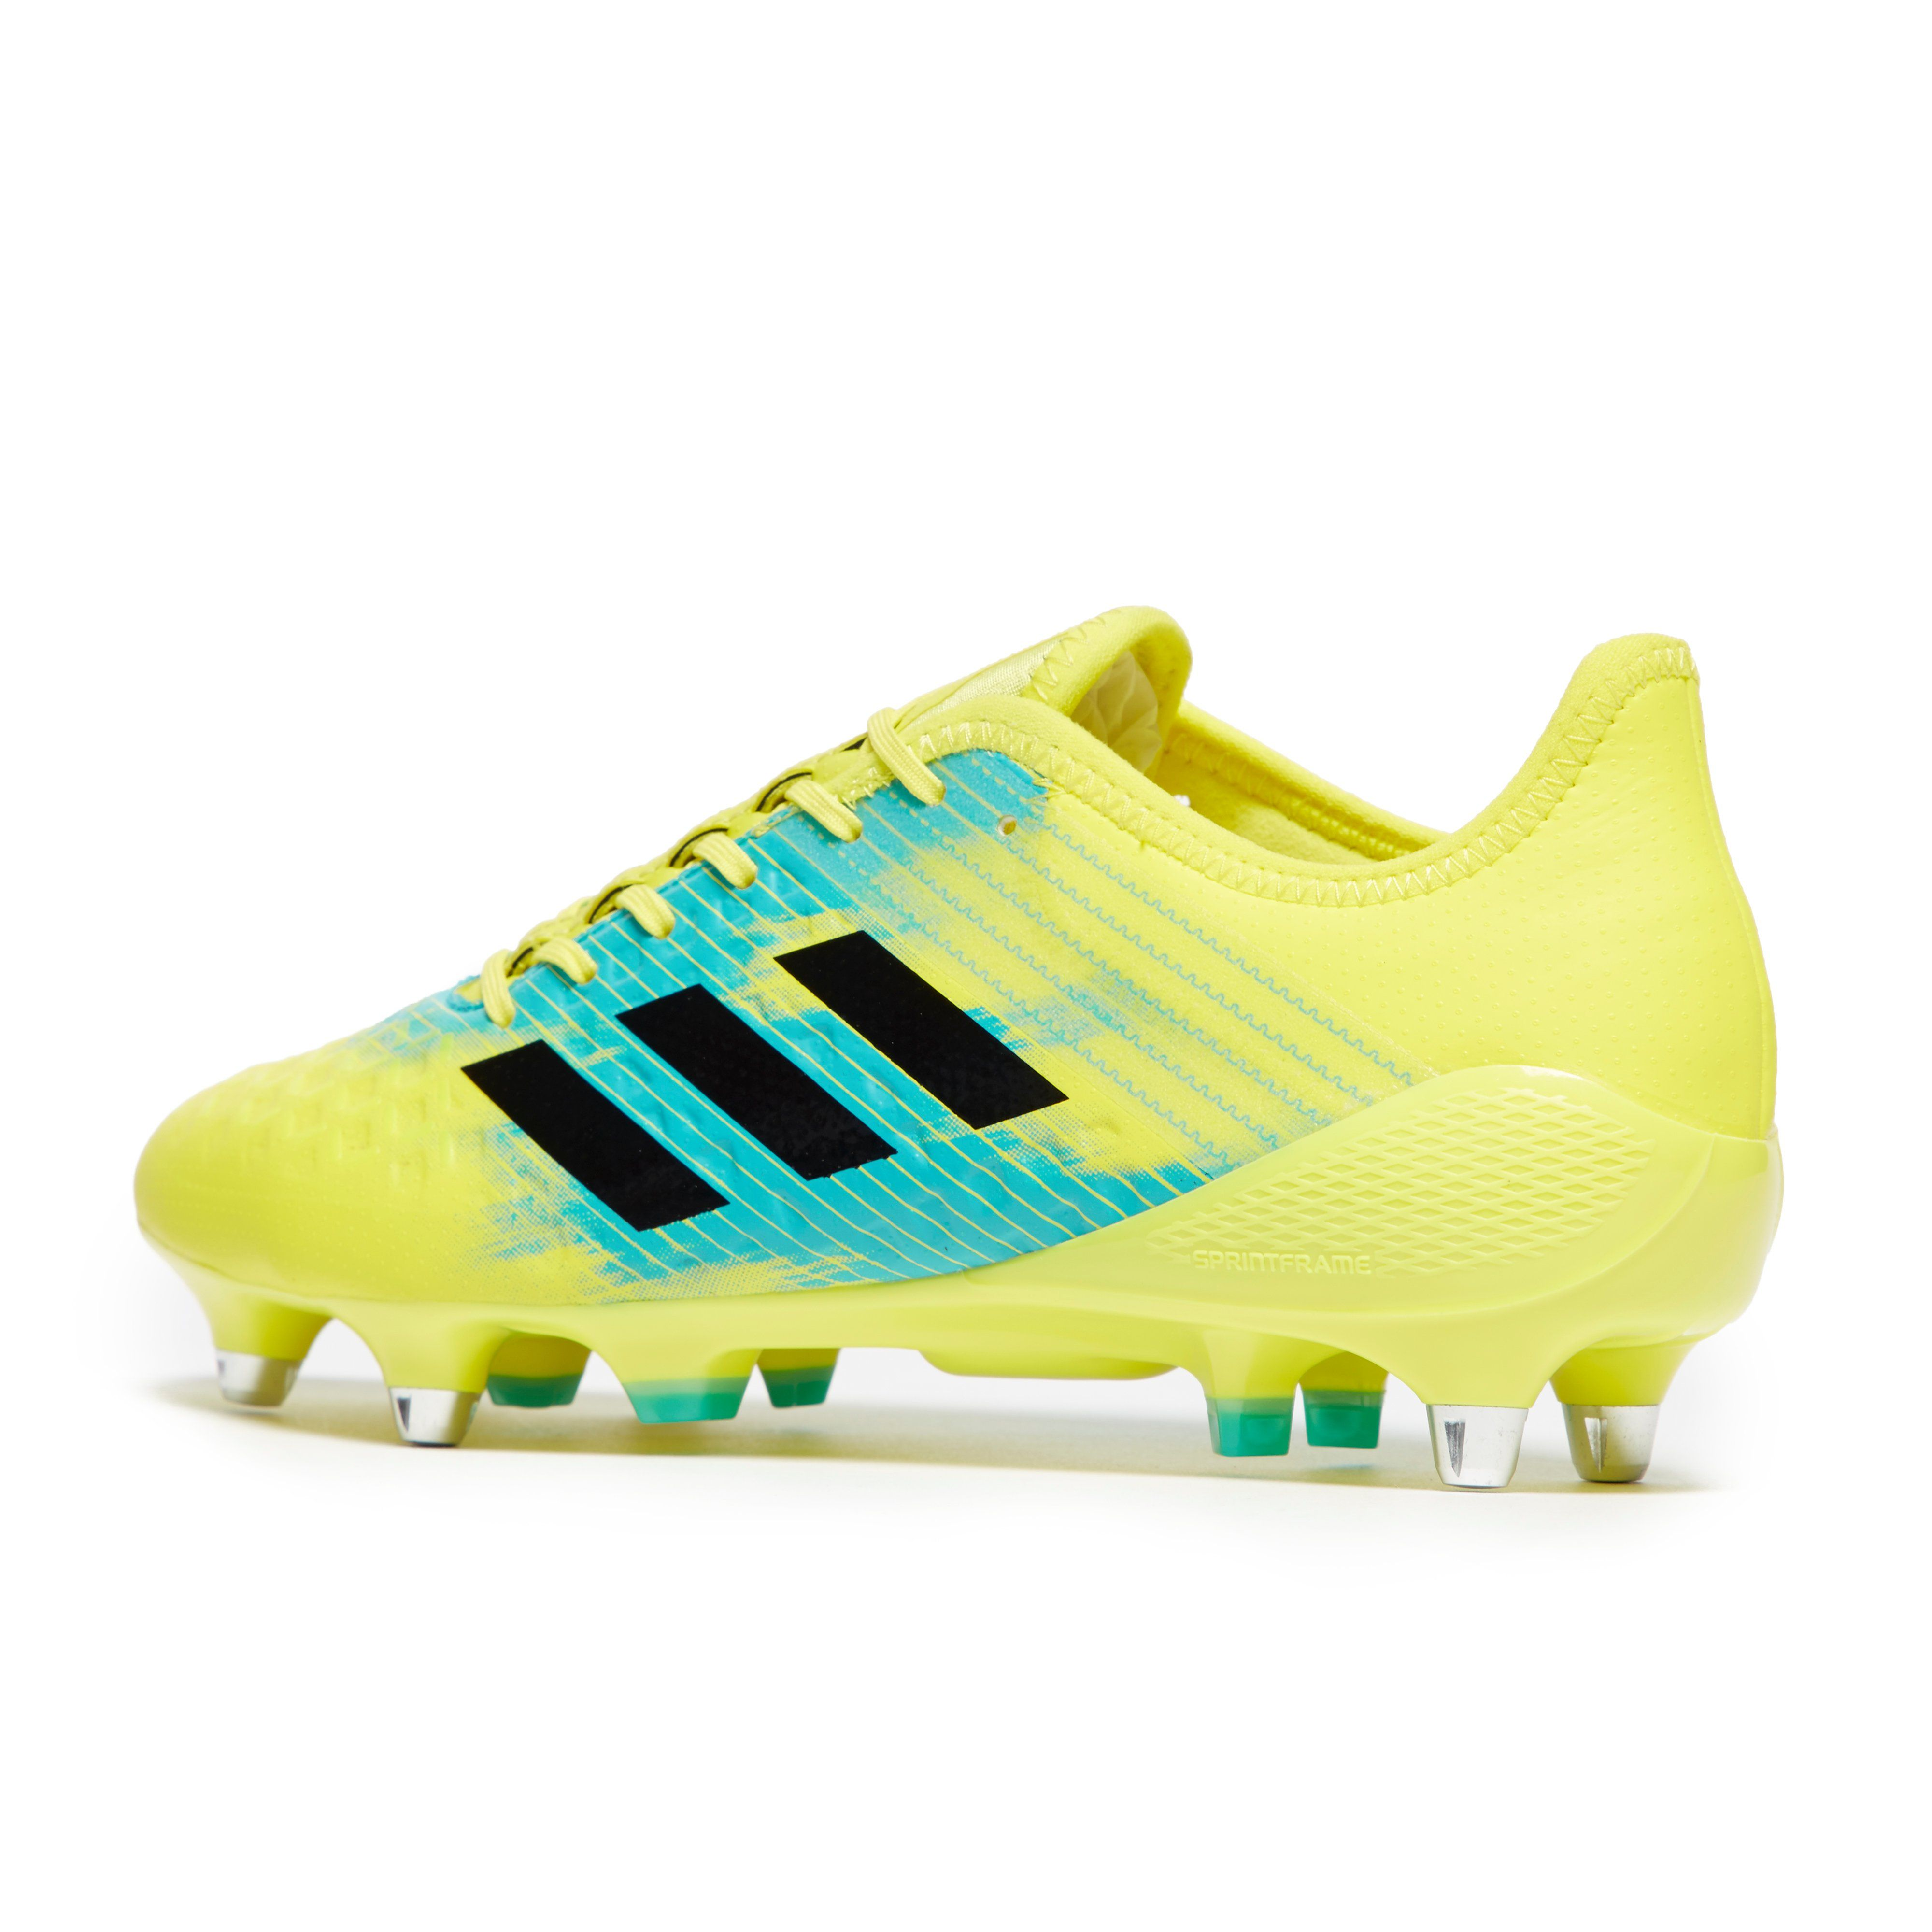 adidas Predator Malice SG Men's Rugby Boots